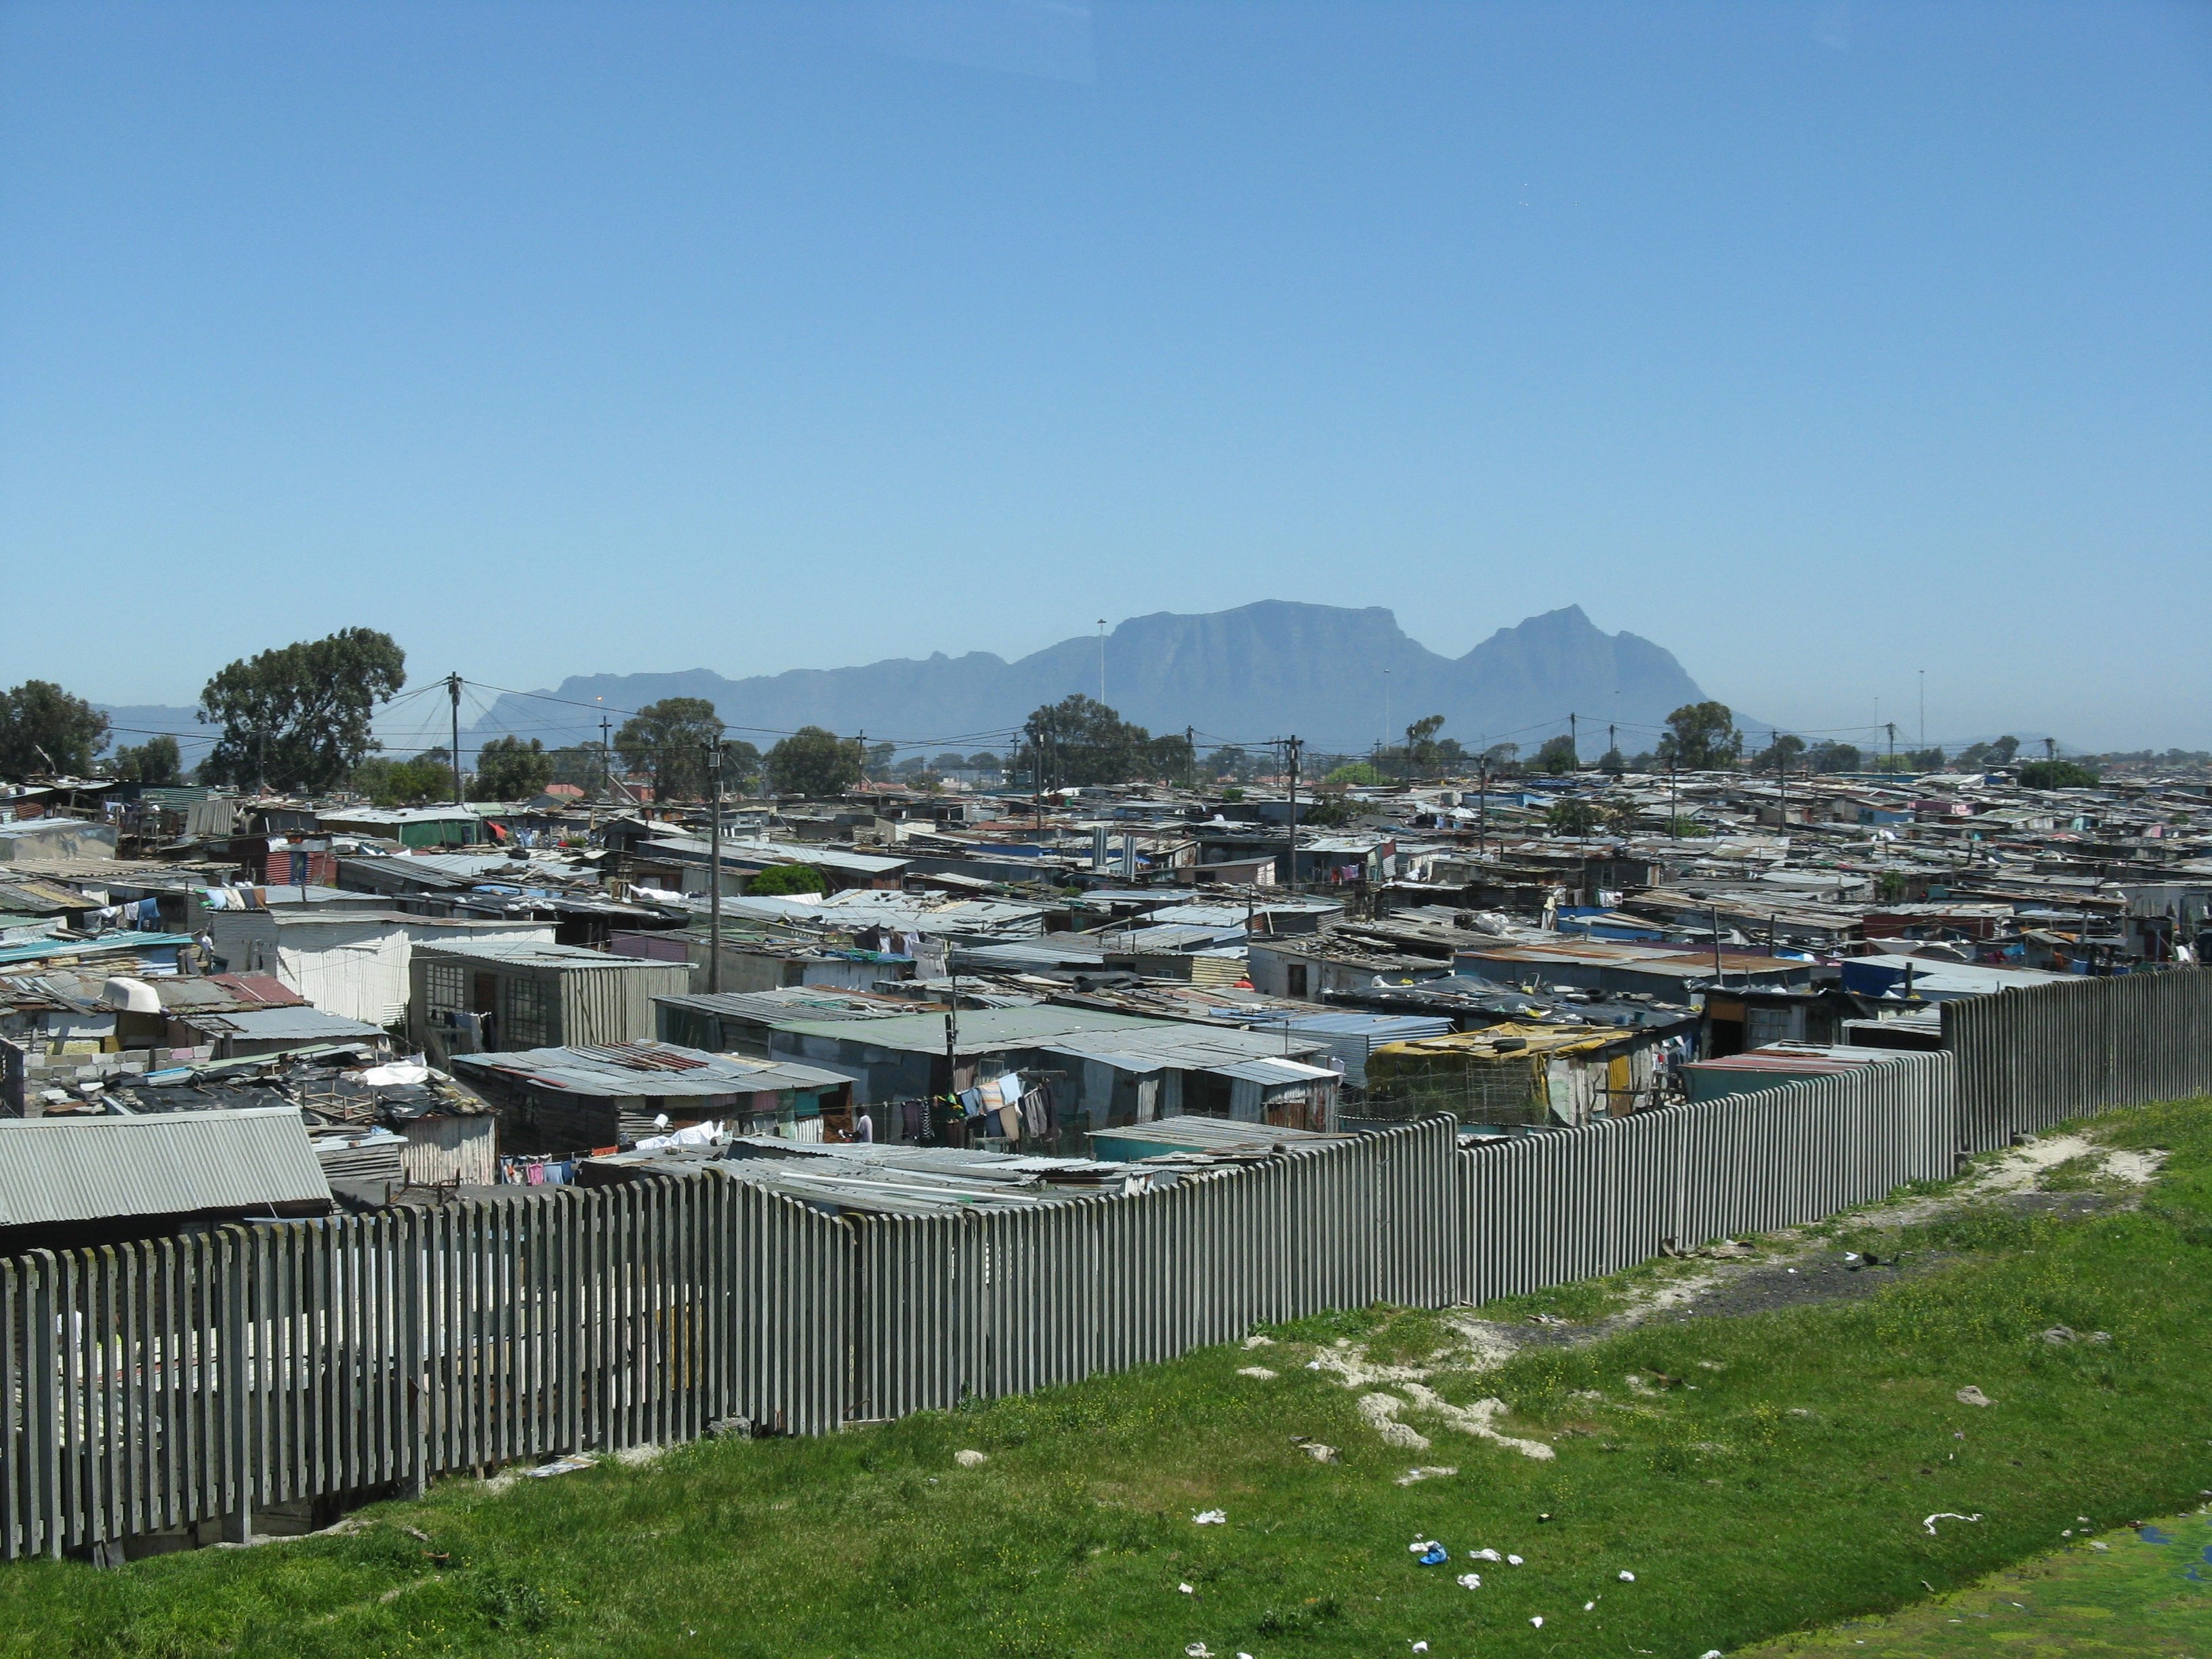 Cape Town water crisis 7 myths that must be bust News24